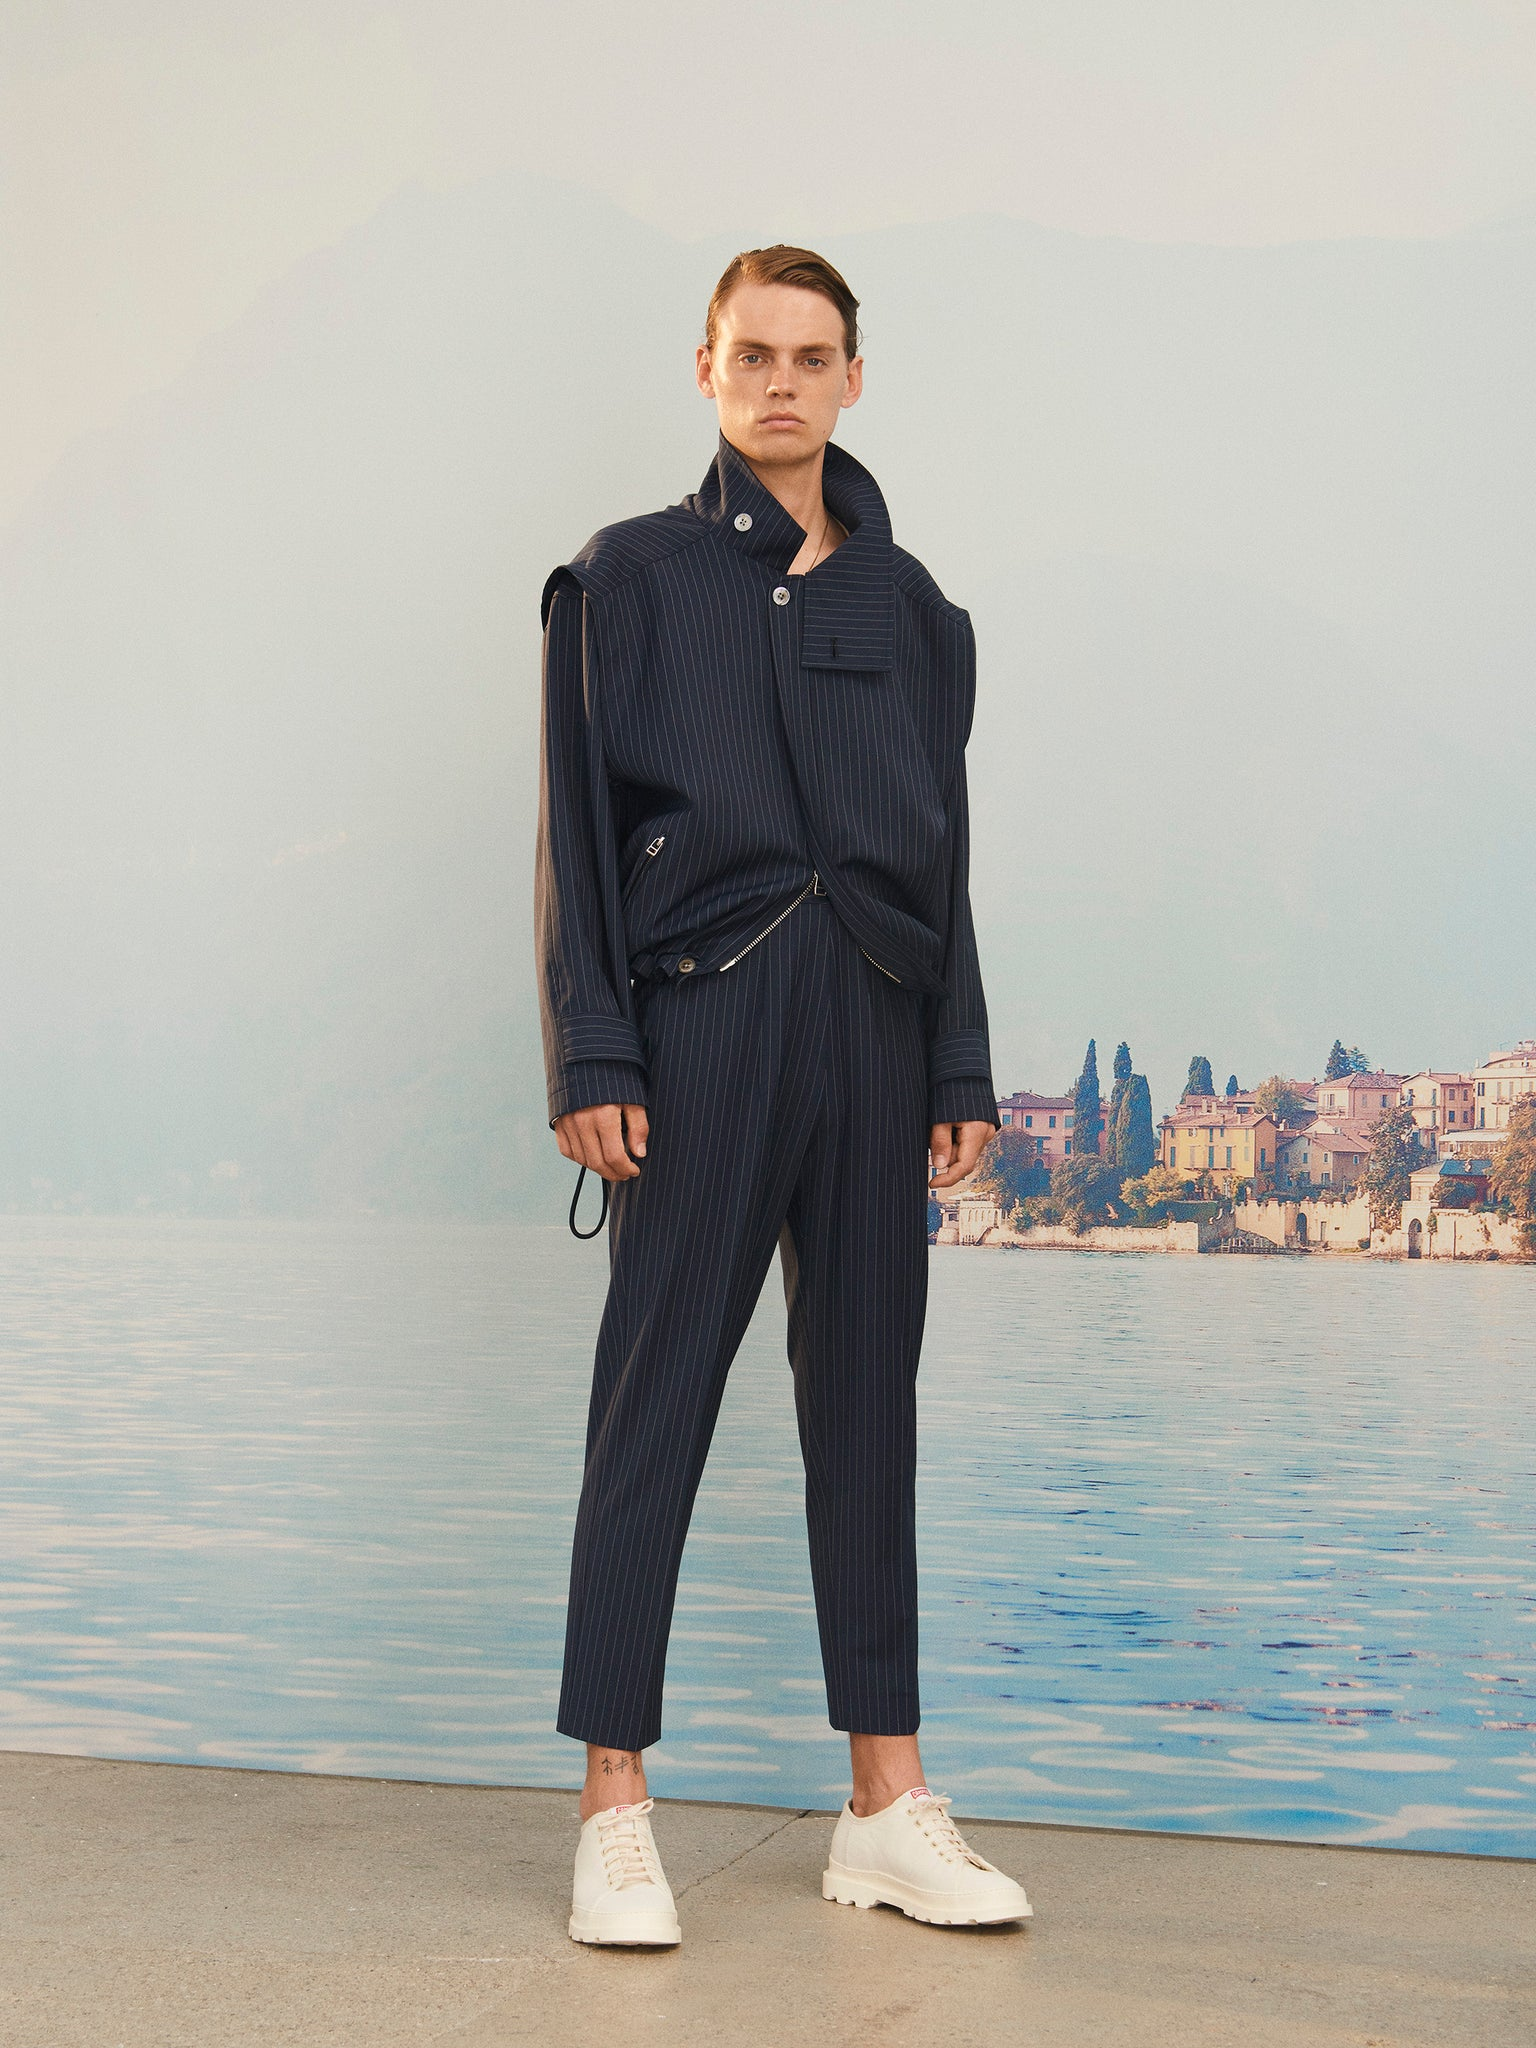 Martin Asbjorn Ma Cropped Trousers Navy Pinstripe Menswear ss20 Spring20 Boring Lookbook